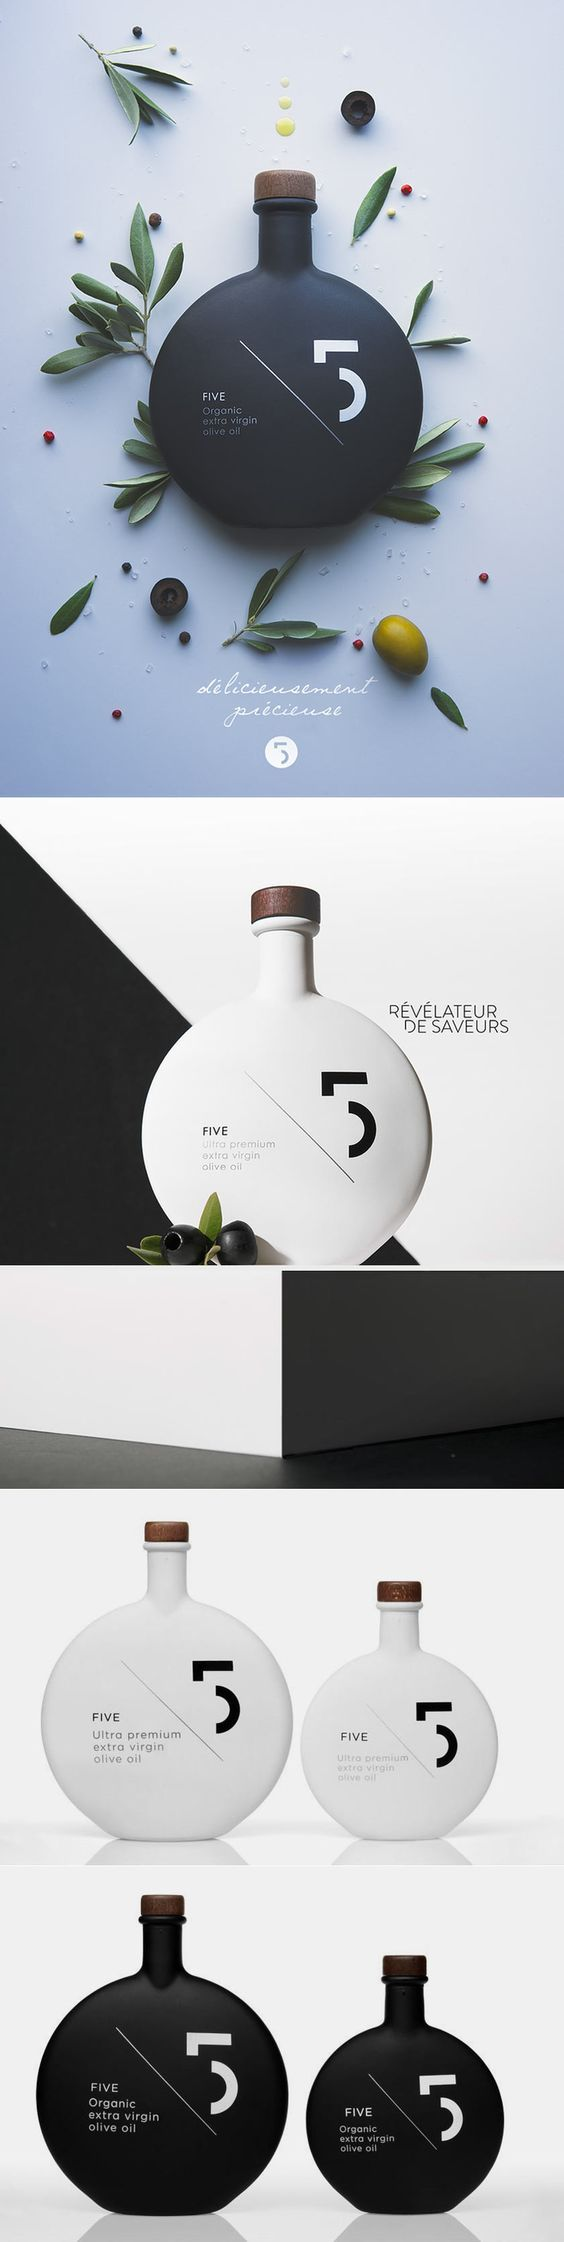 Beautiful simplified packaging design with huge 'I want to touch it' appeal #packaging #design: